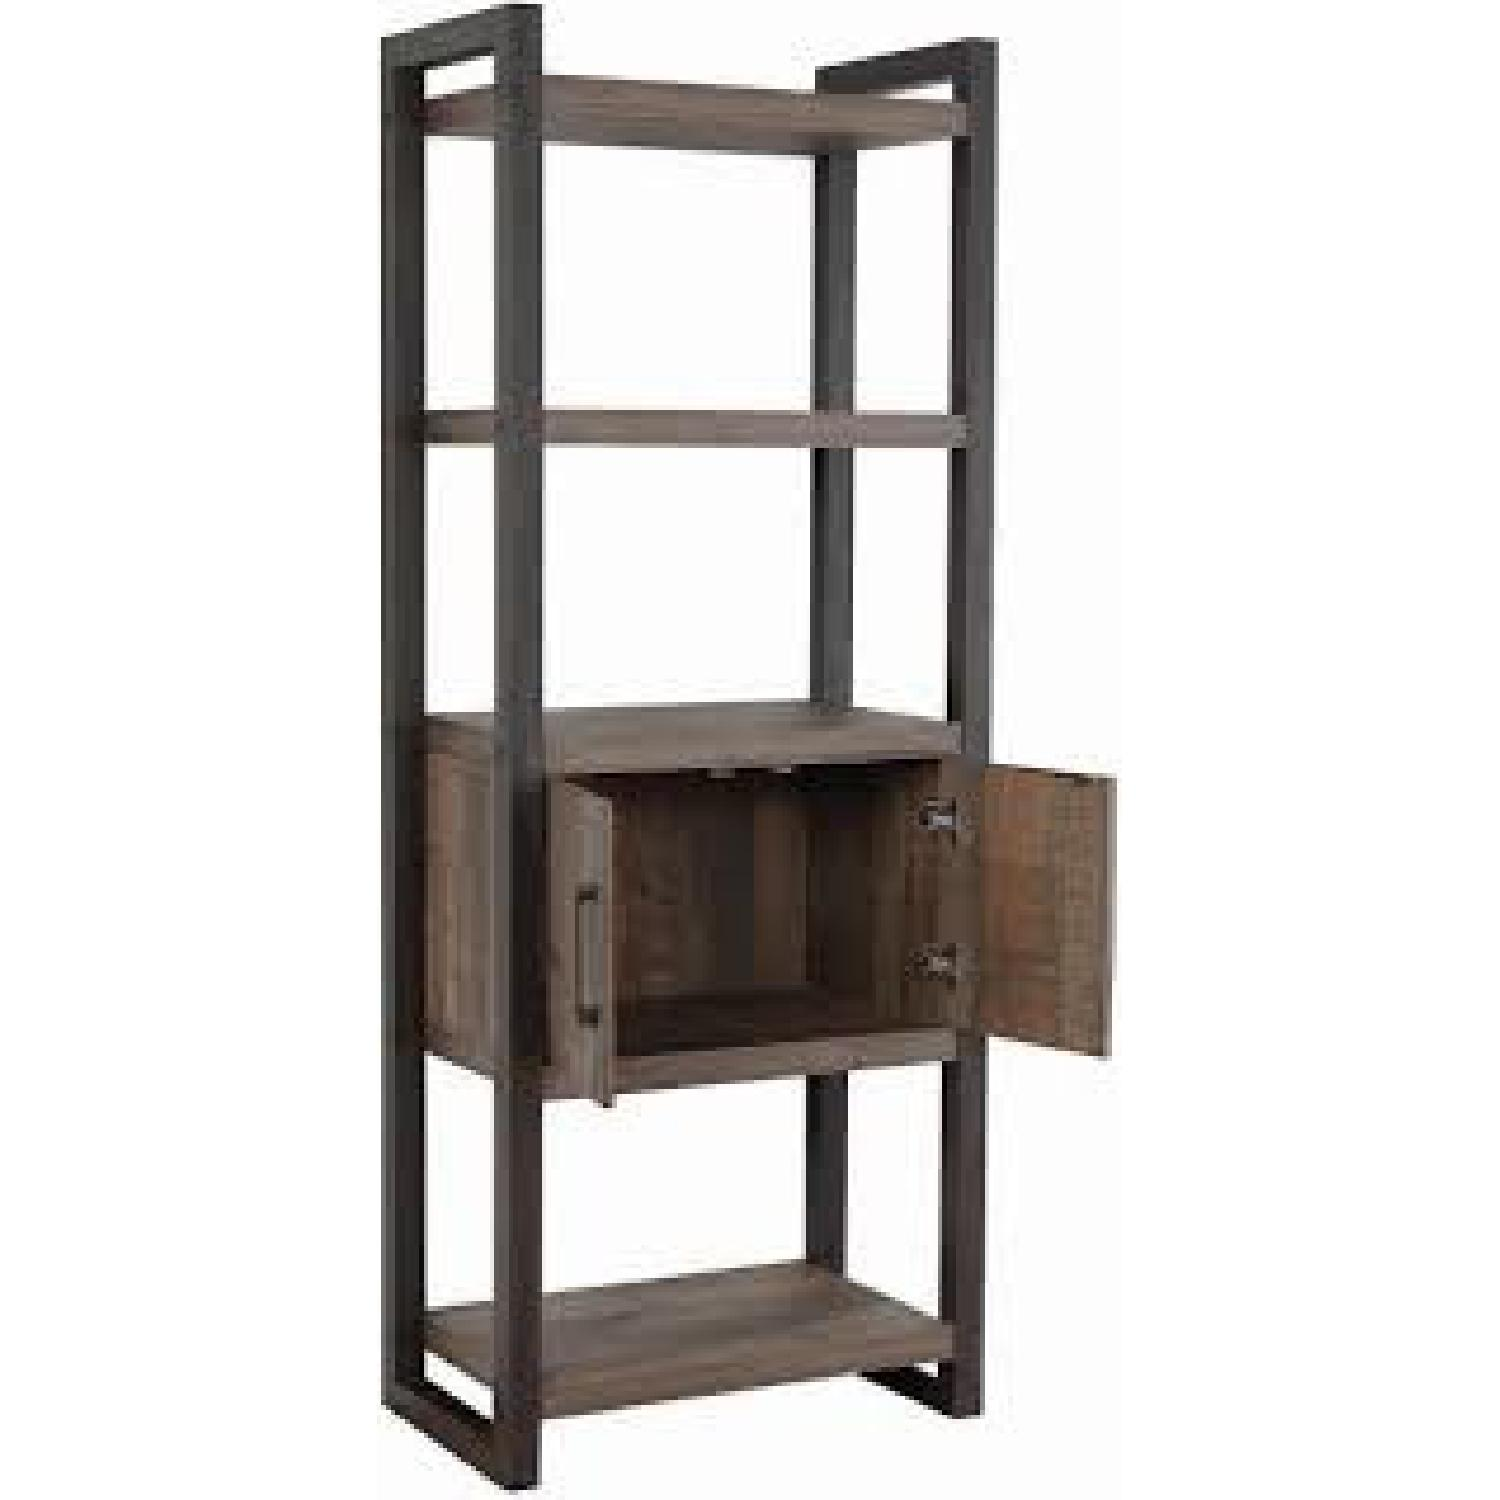 Natural Rustic Coffee Bookcase w/ Cabinet - image-1